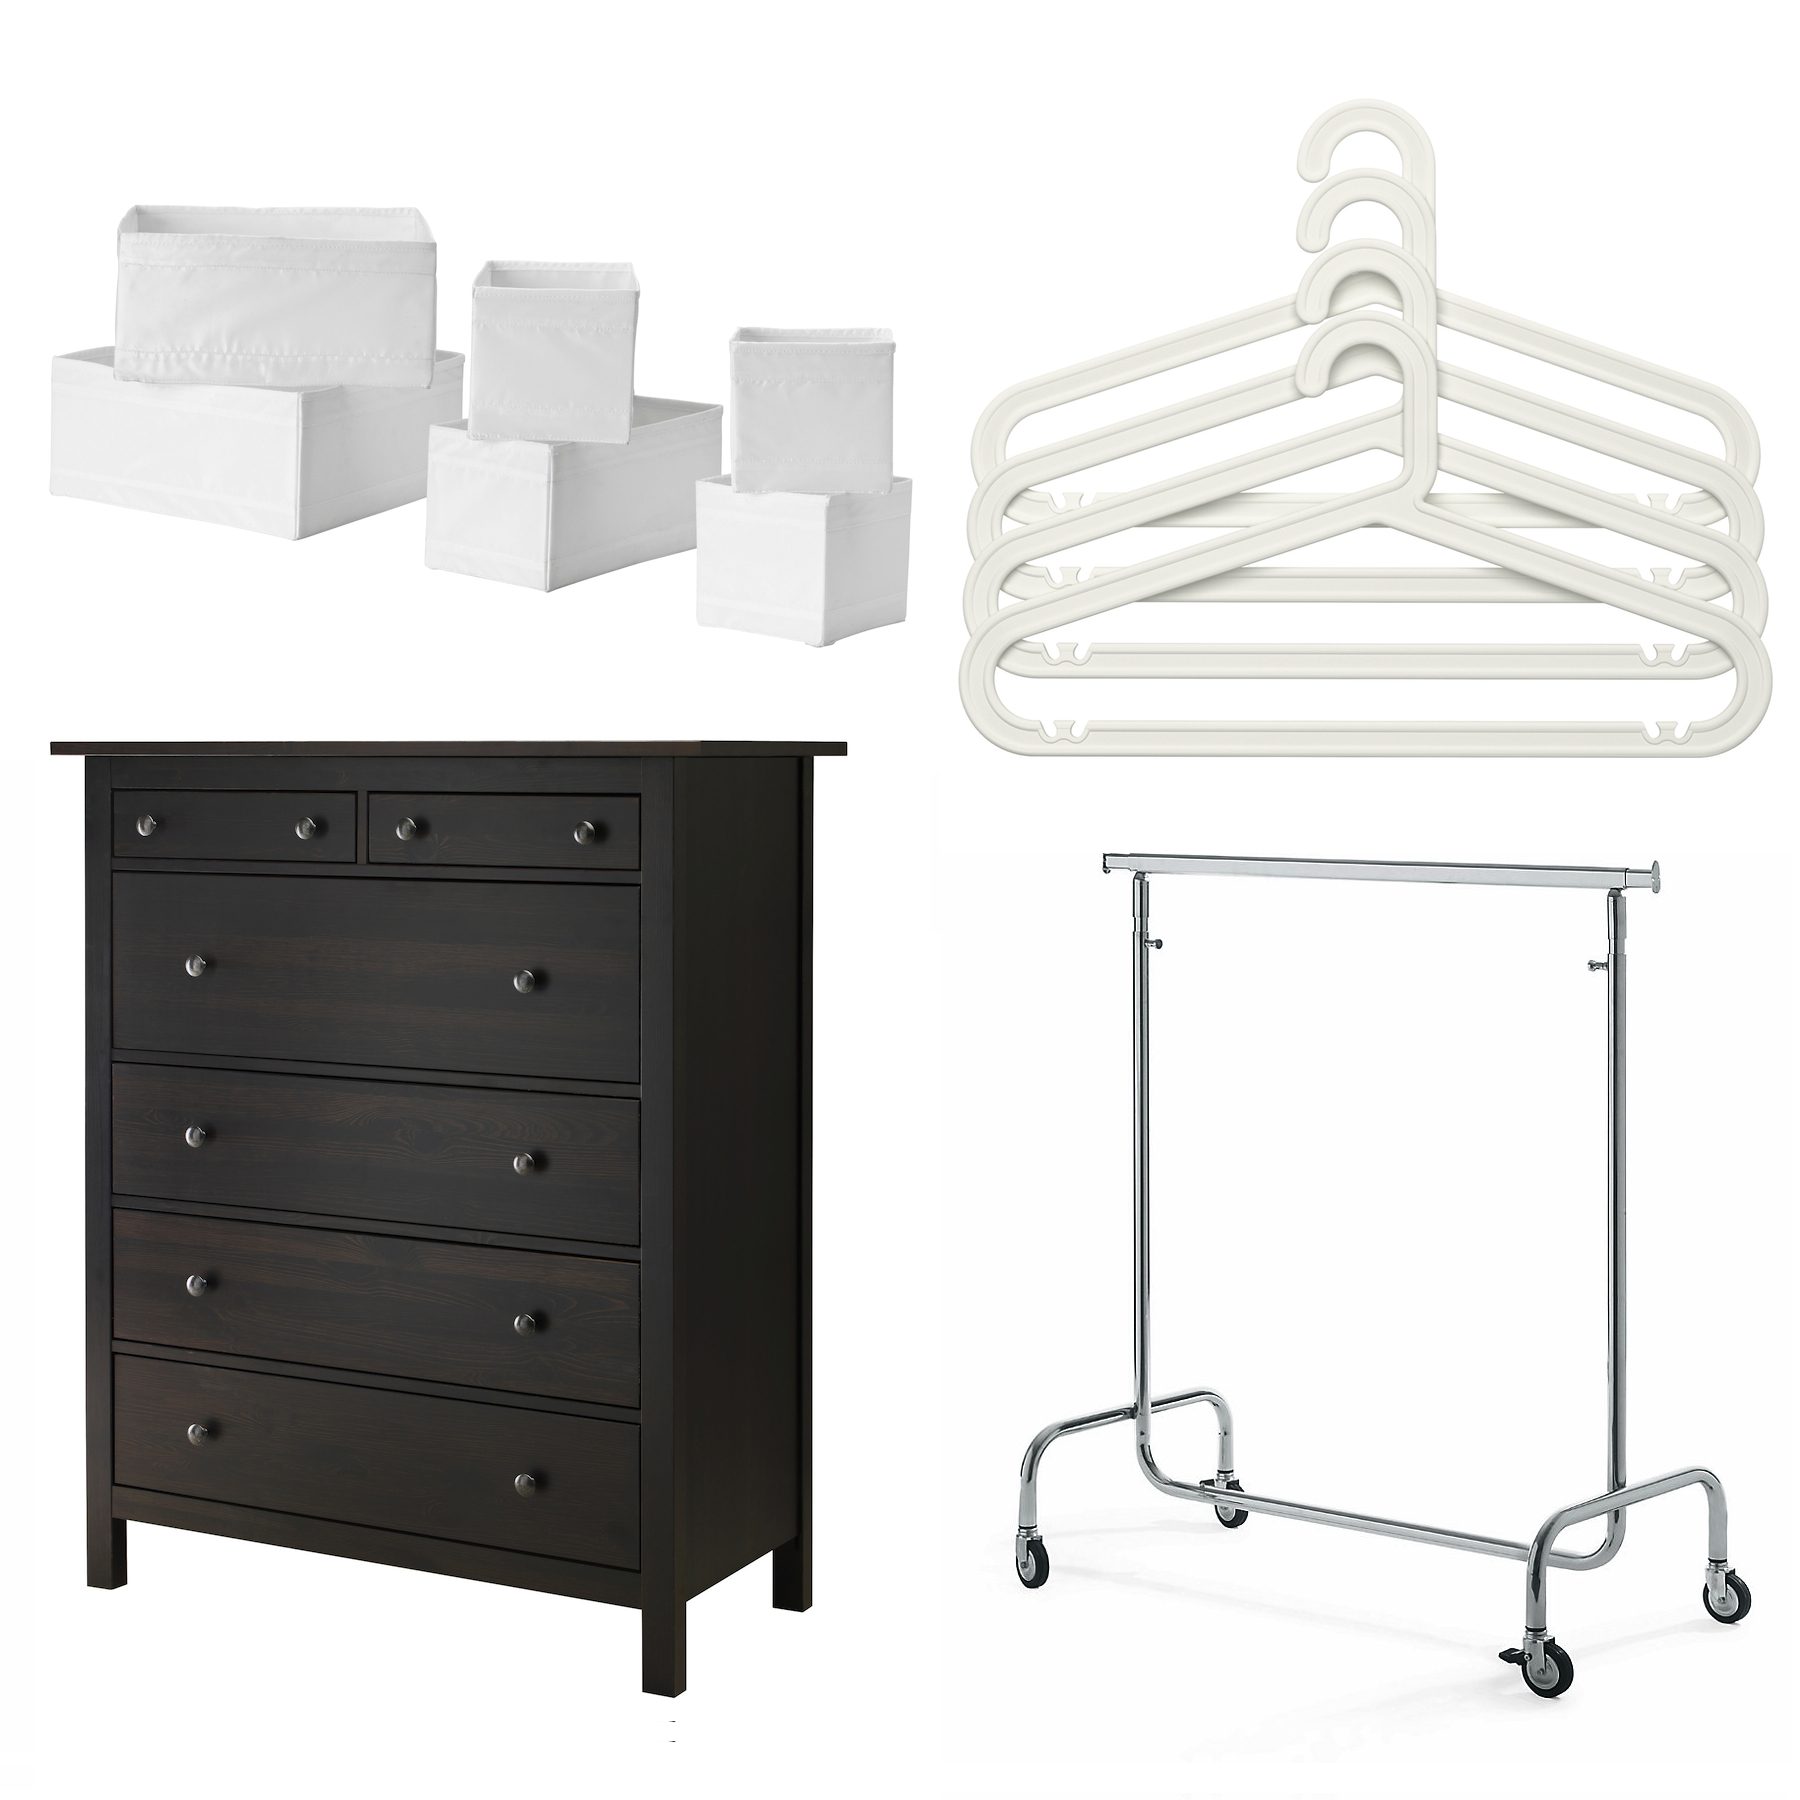 meine kleiderschrank planung zeroutine beauty und lifestyle blog. Black Bedroom Furniture Sets. Home Design Ideas